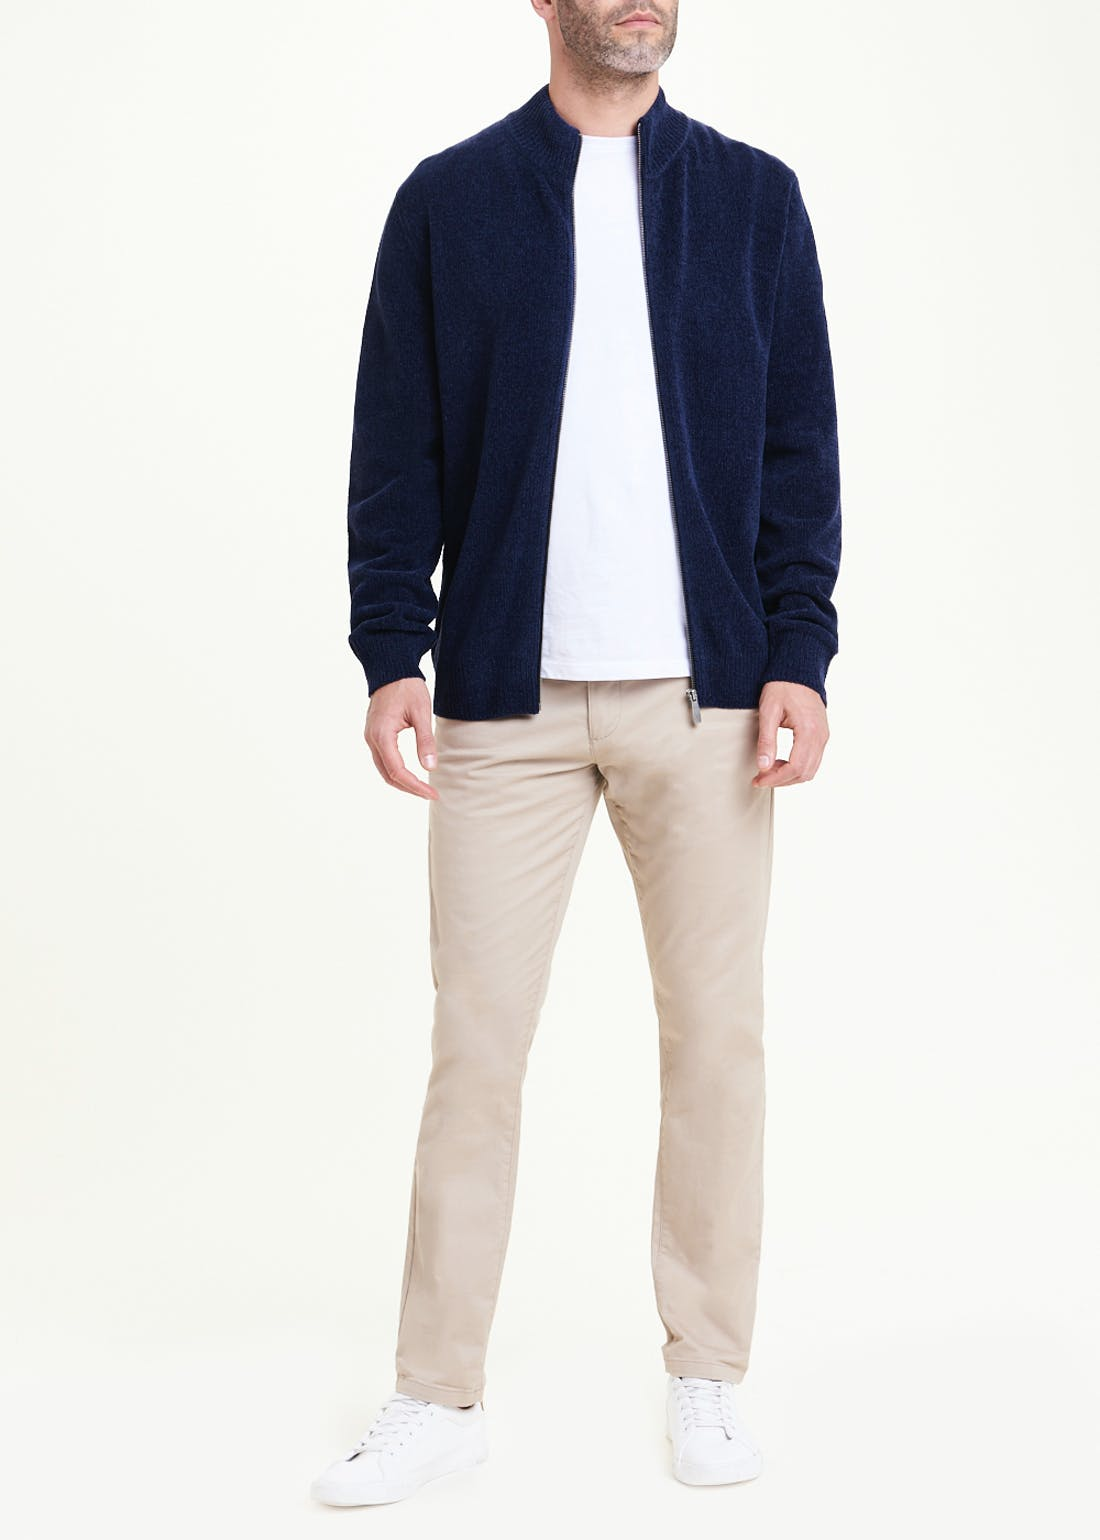 Lincoln Chenille Zip Up Jumper